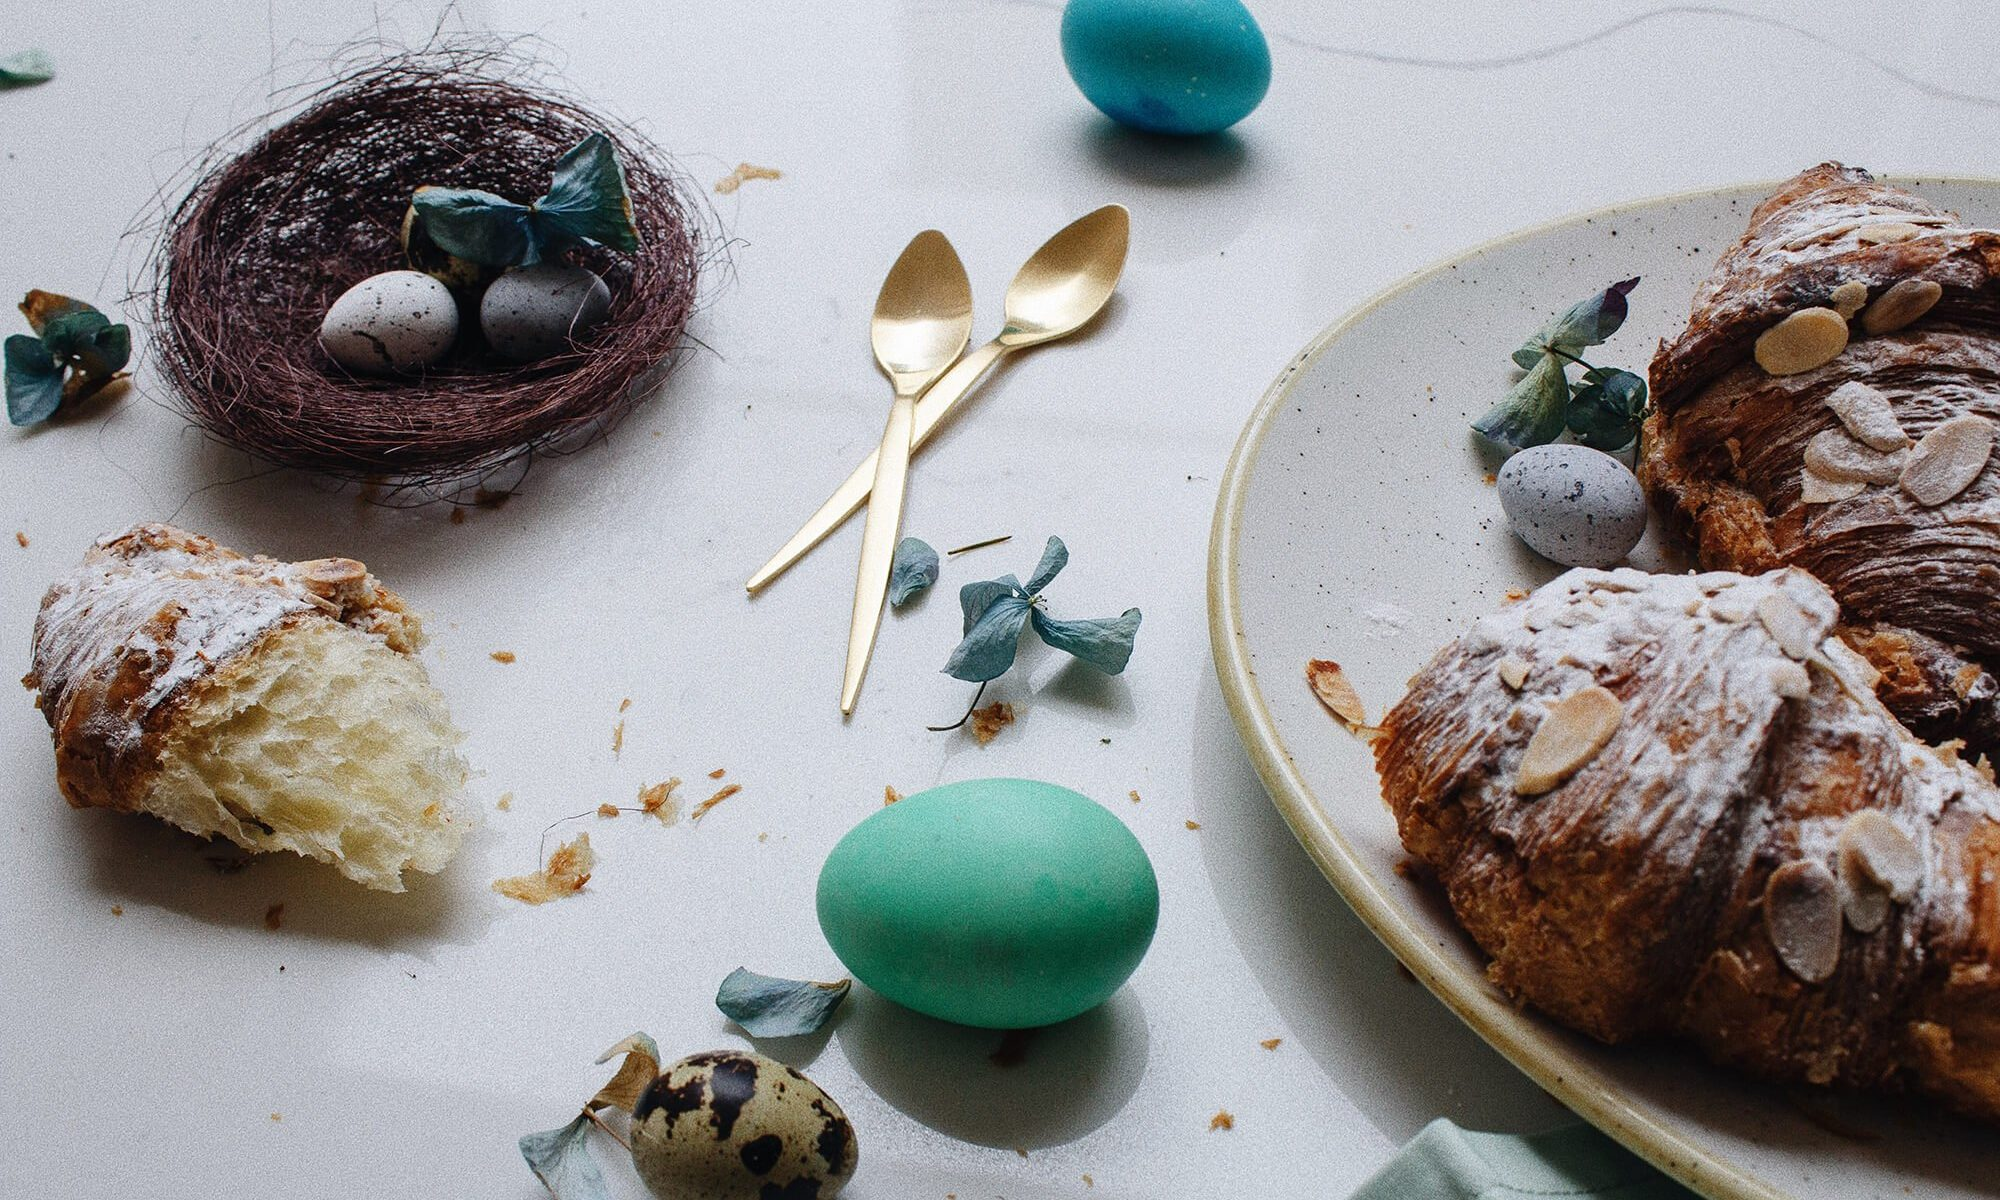 Temza Design Studio shares ideas, tips and tricks for inspiring Easter decoration